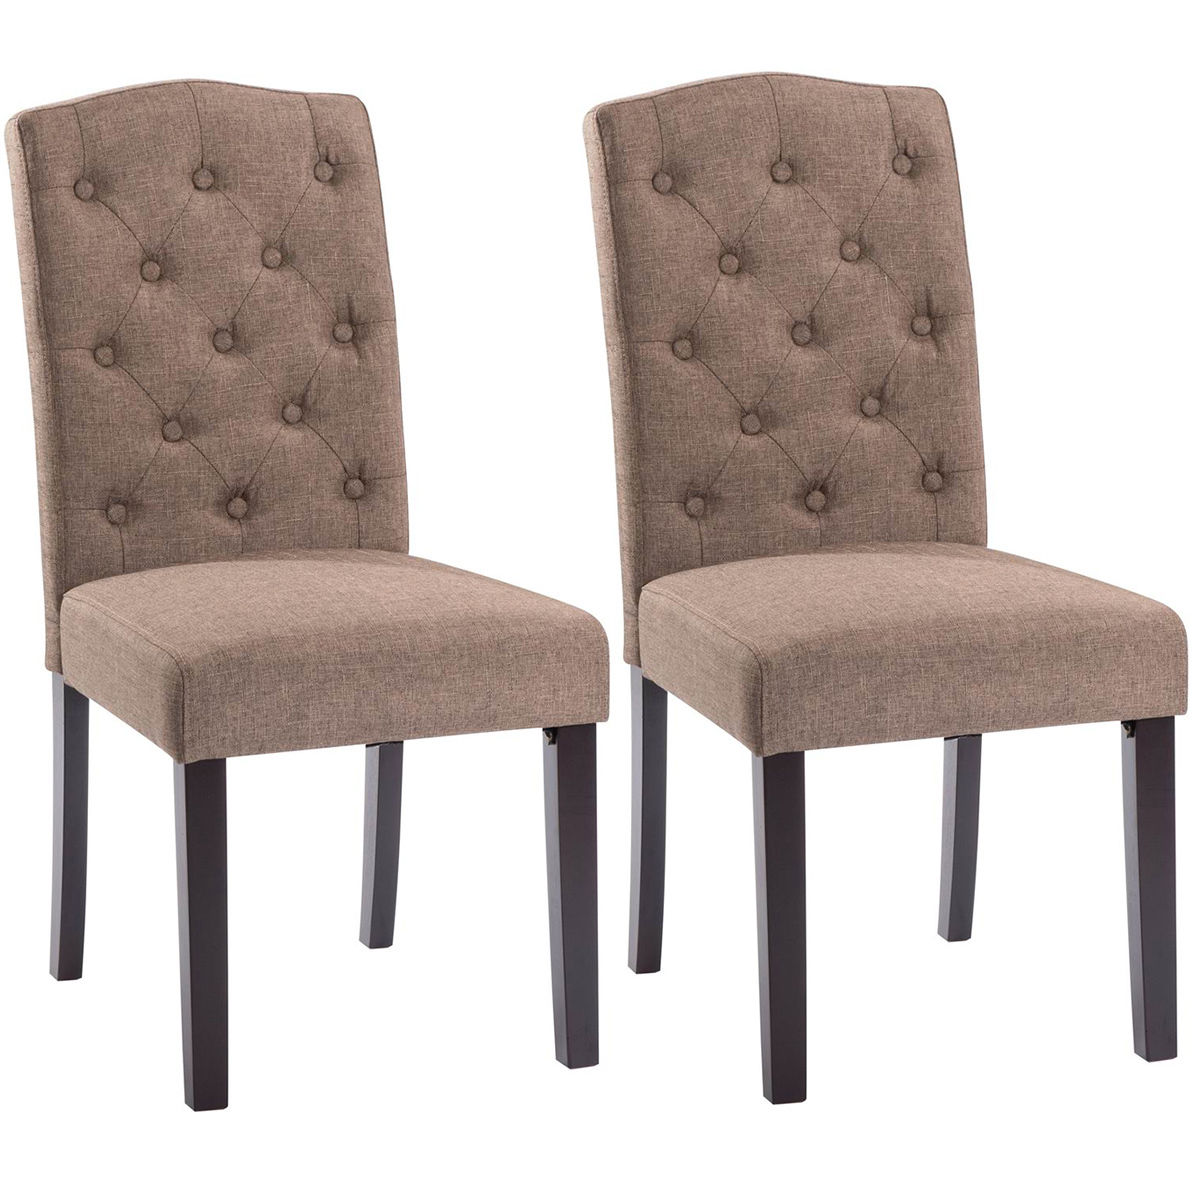 Costway Set of 2 Linen Fabric Wood Accent Dining Chair Tufted Modern Living Room Brown by Costway